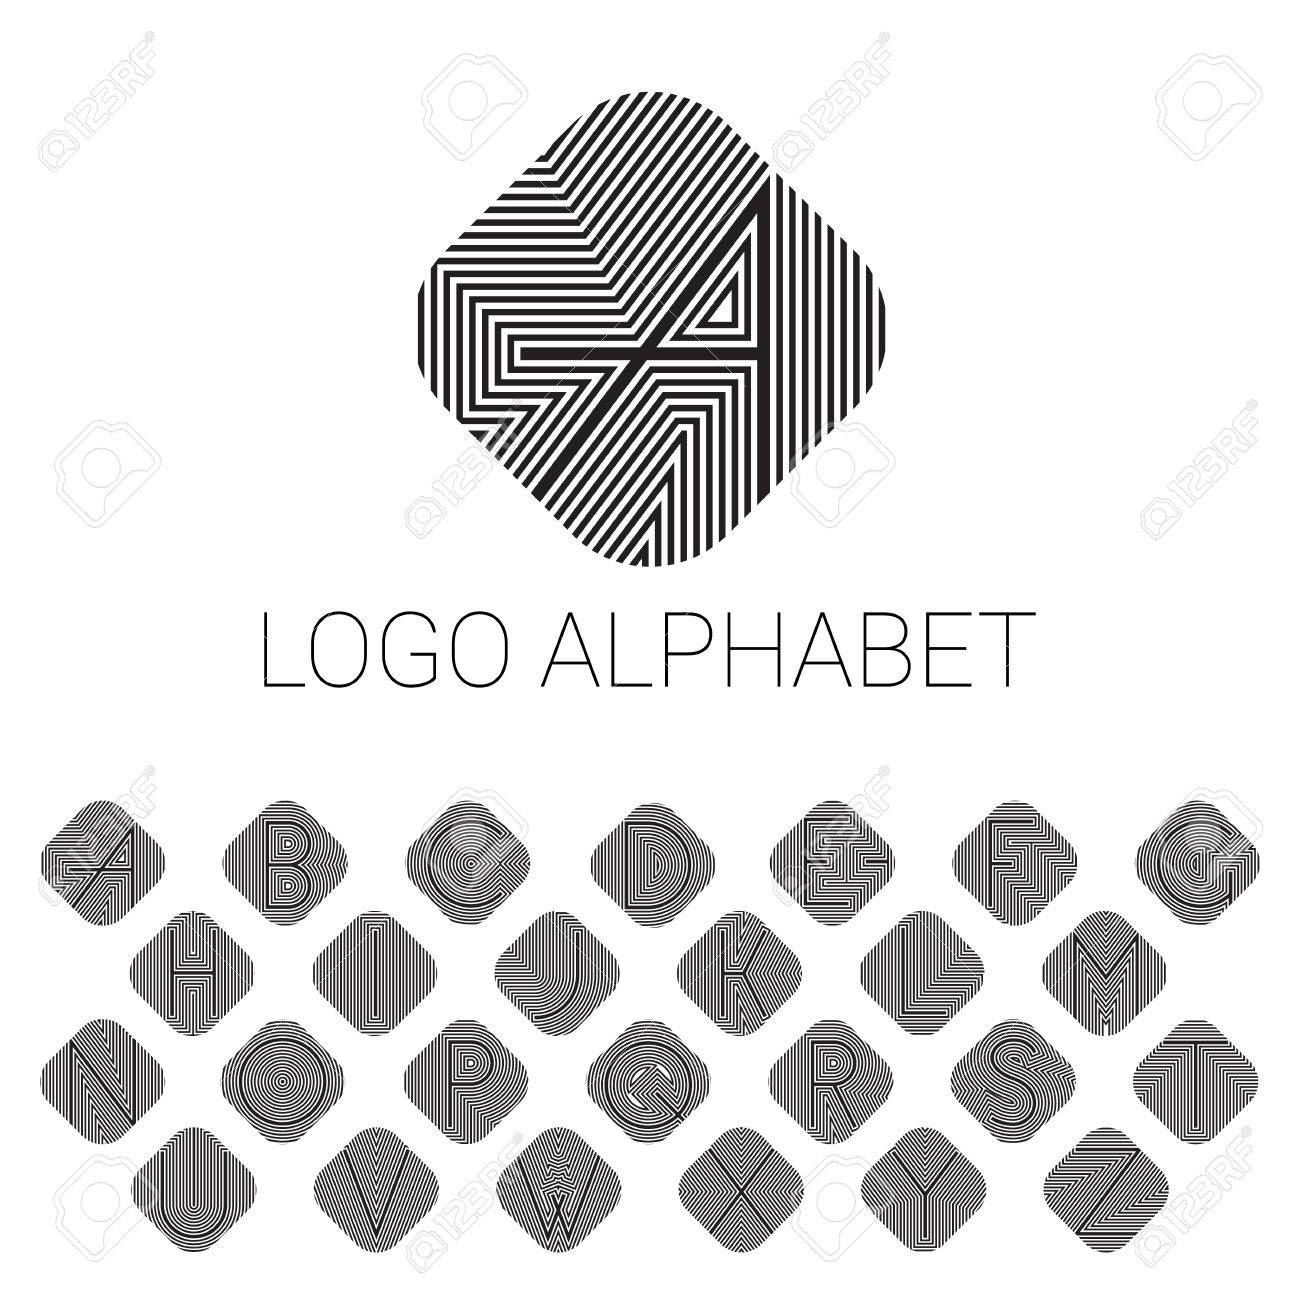 Alphabet brand letters as logo  ABC with patterned background